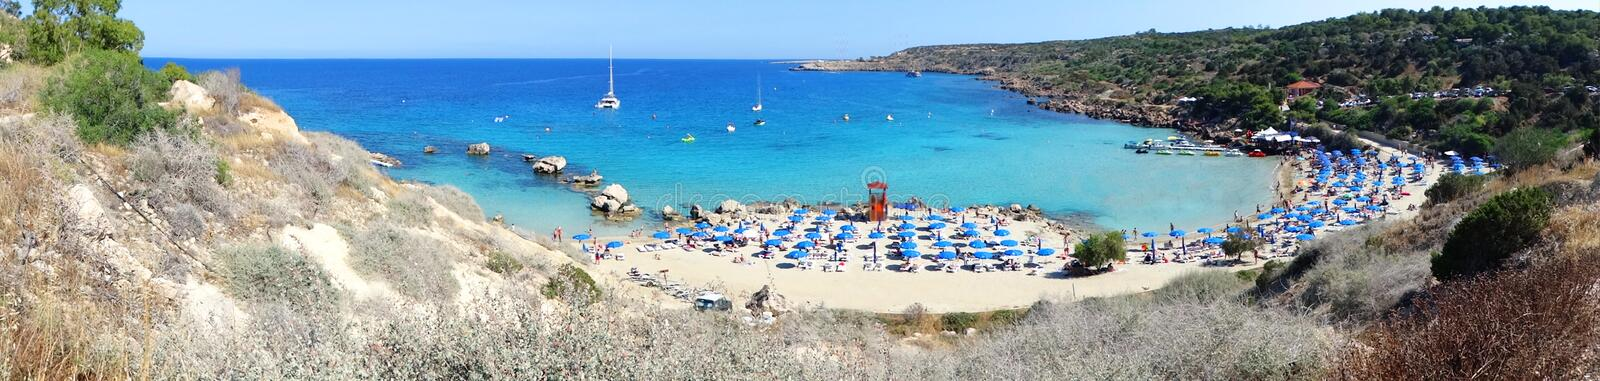 Panorama beach coast landscape mediterranean sea Cyprus island stock photos